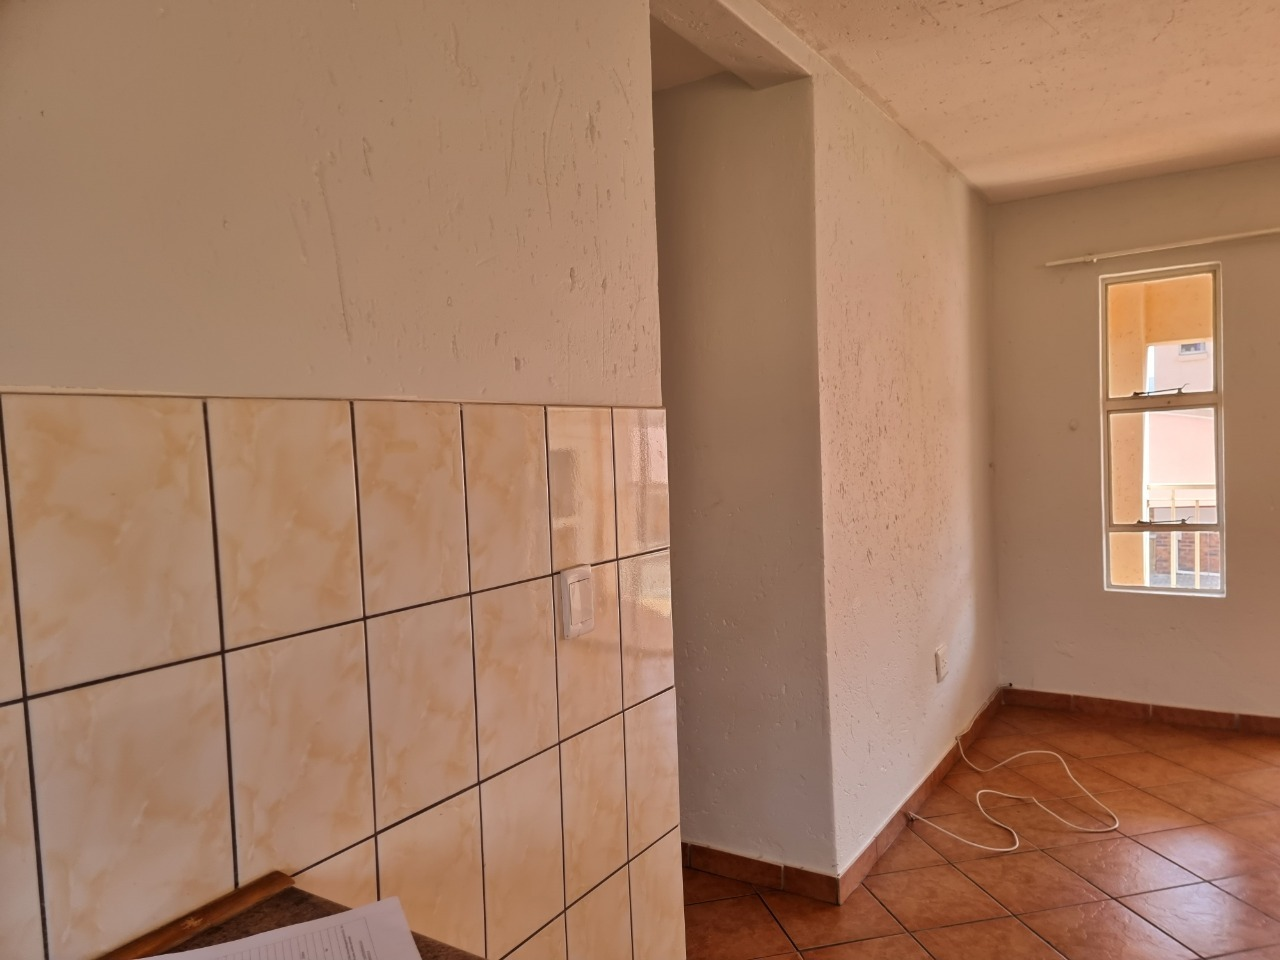 3 Bedroom Apartment / Flat For Sale in Rensburg